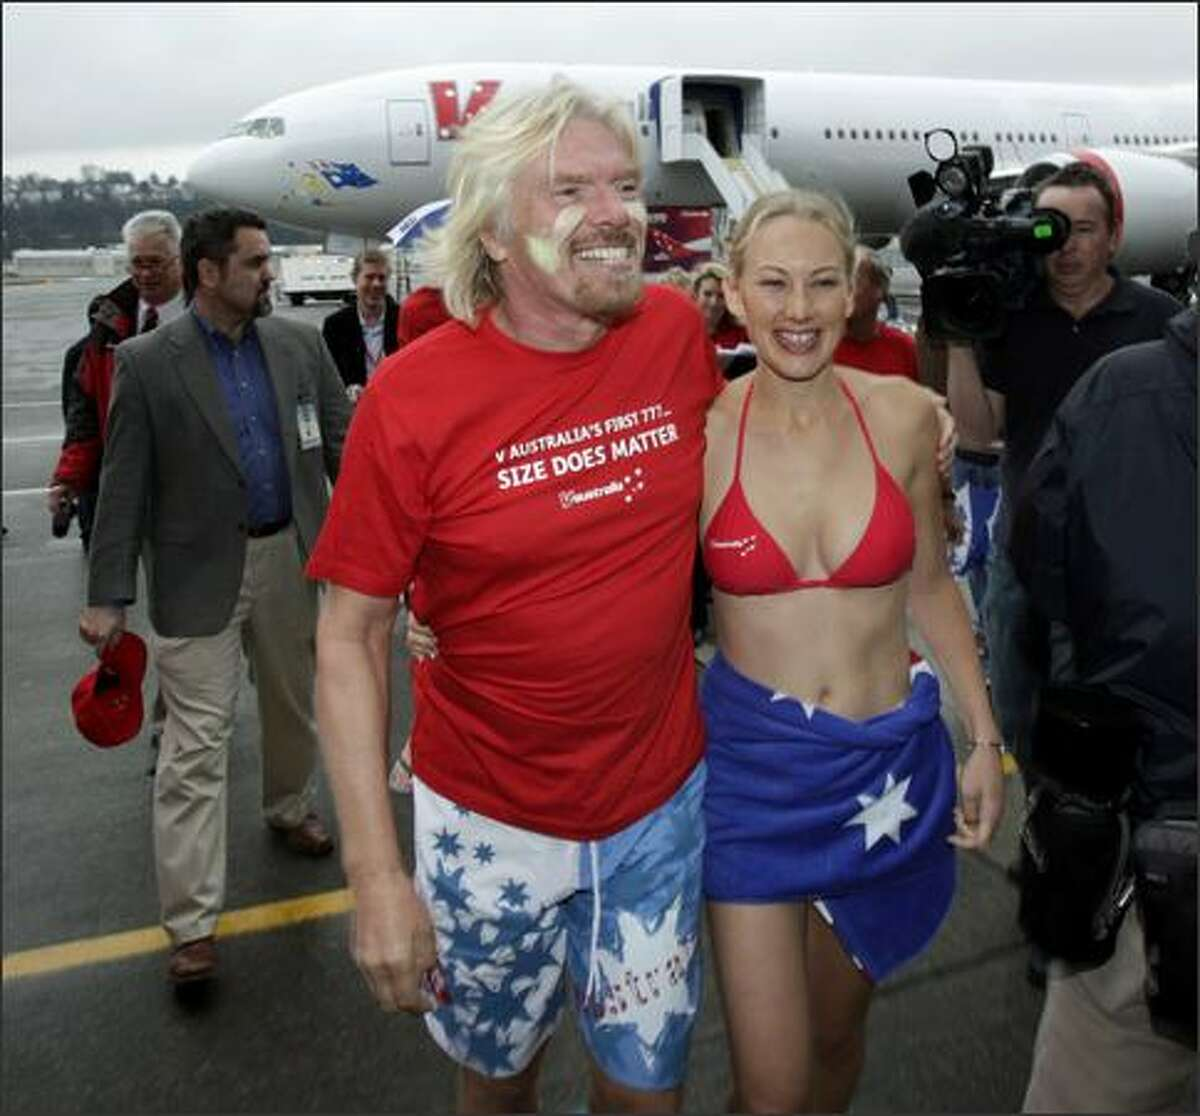 Sir Richard Branson, chairman of Virgin Group, walks with cabin crewmember Catherine Blackbee as they attend a delivery ceremony Friday for a Boeing Co. 777-300ER airplane in Seattle. The plane will serve the Los Angeles-to-Sydney route for Virgin's new V Australia airline.